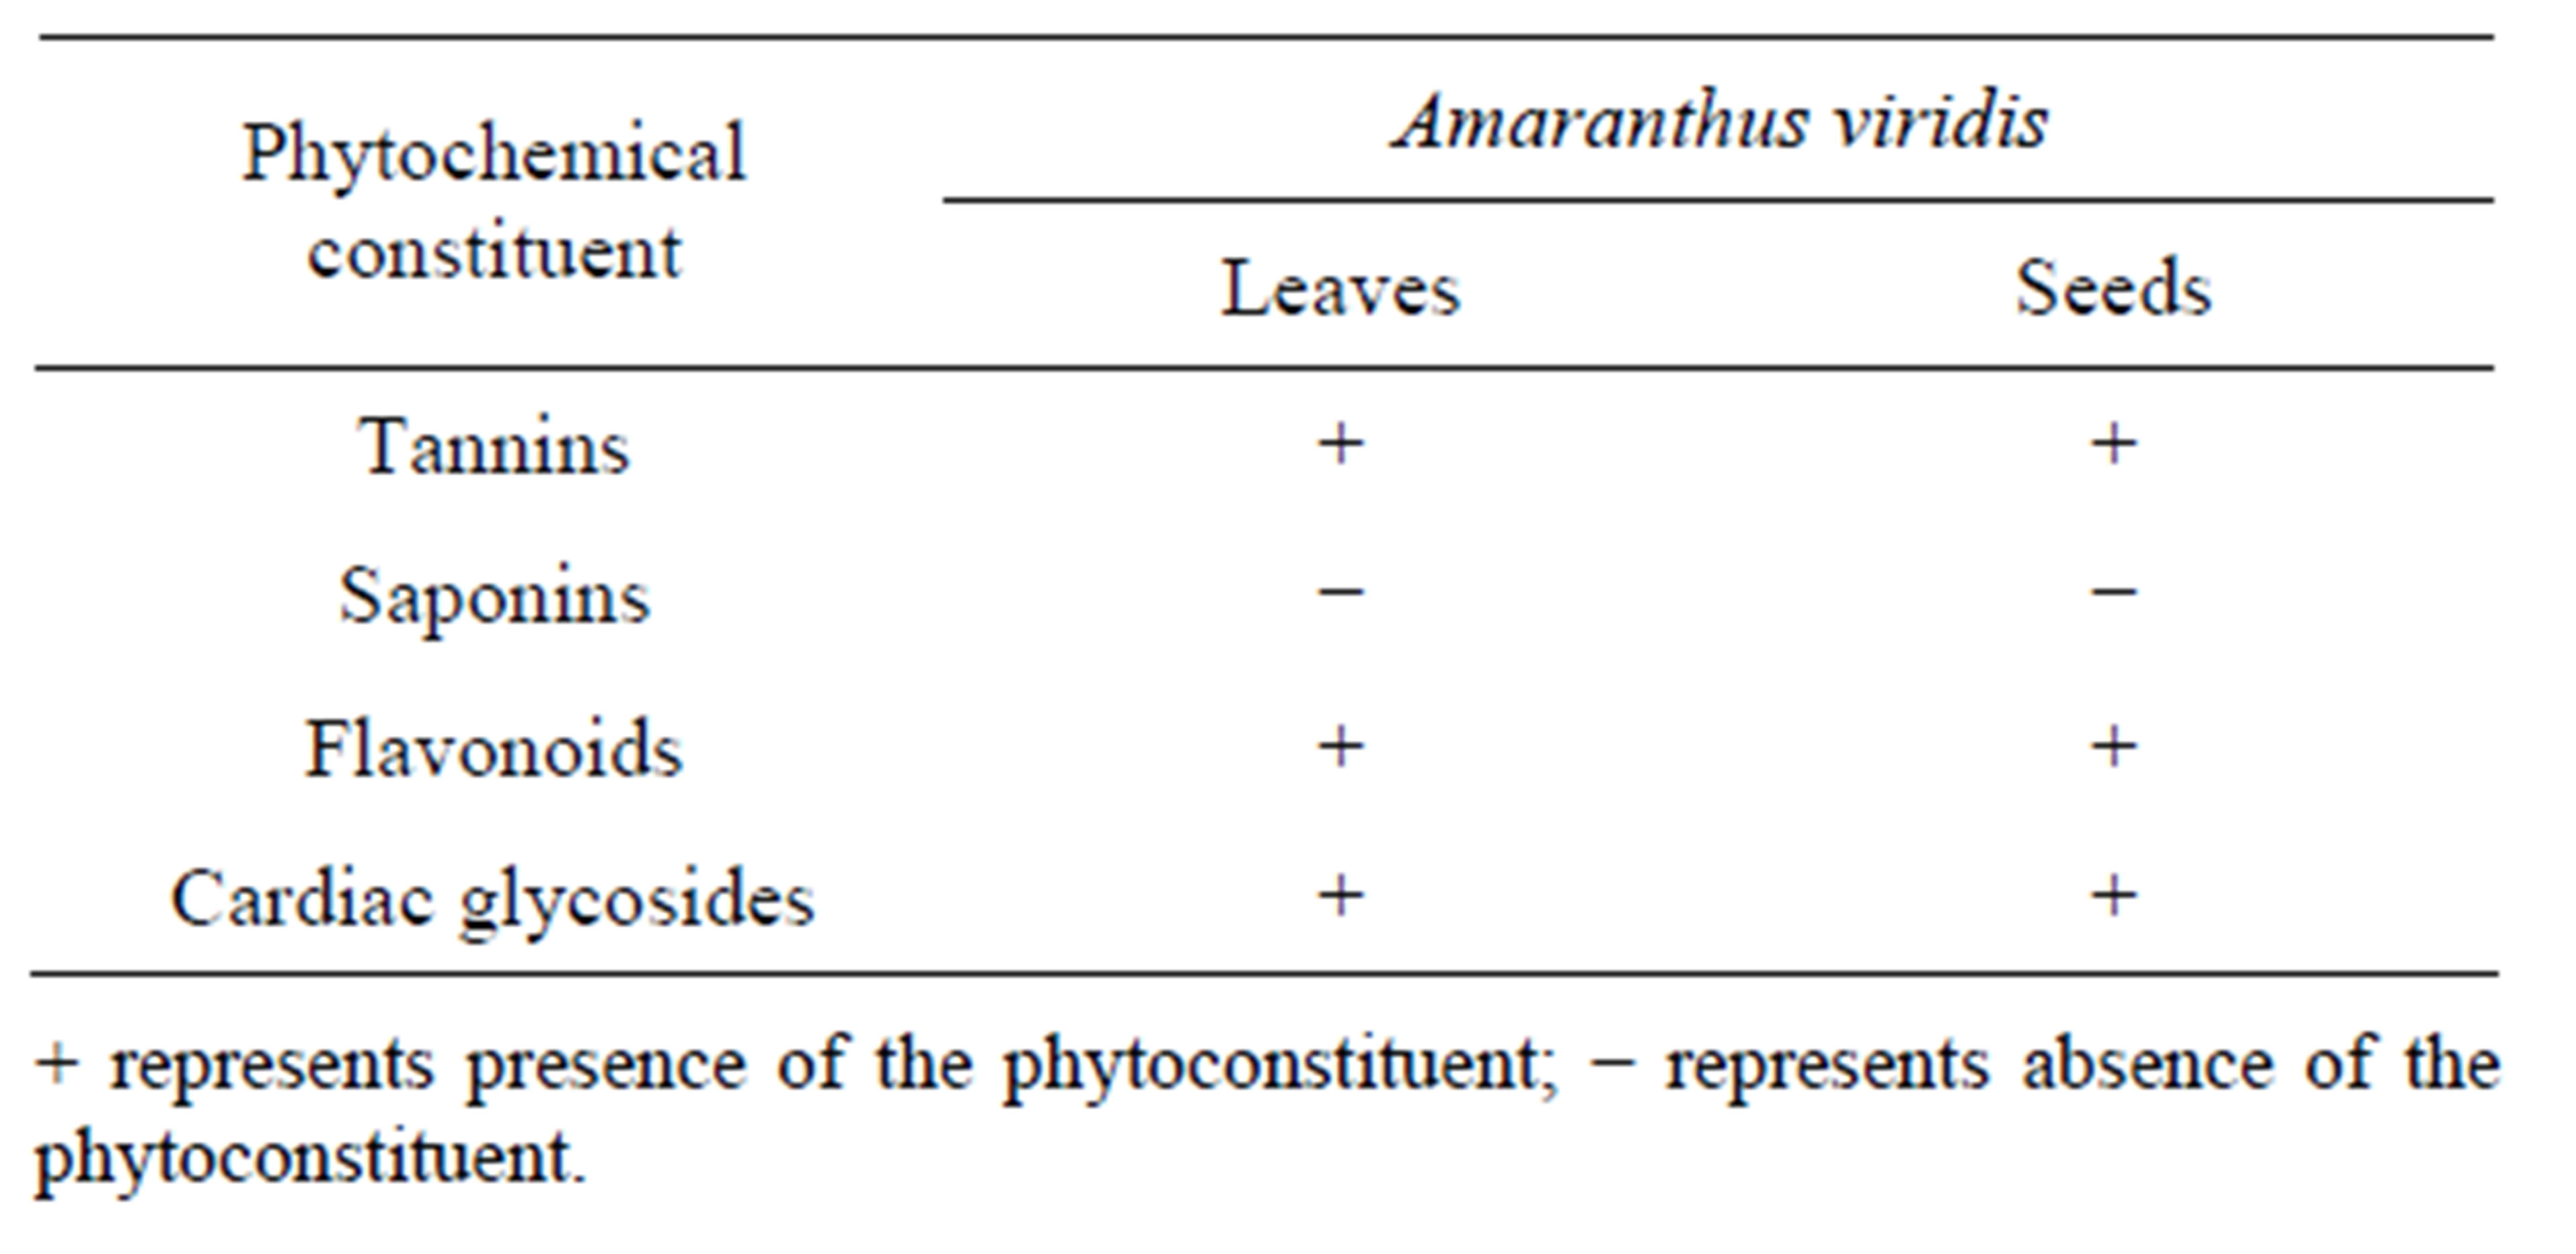 thesis on phytochemical screening On dec 17, 2009, bhakta prasad gaire (and others) published a research thesis starting with the following thesis statement: stem barks of ficus auriculata have been.